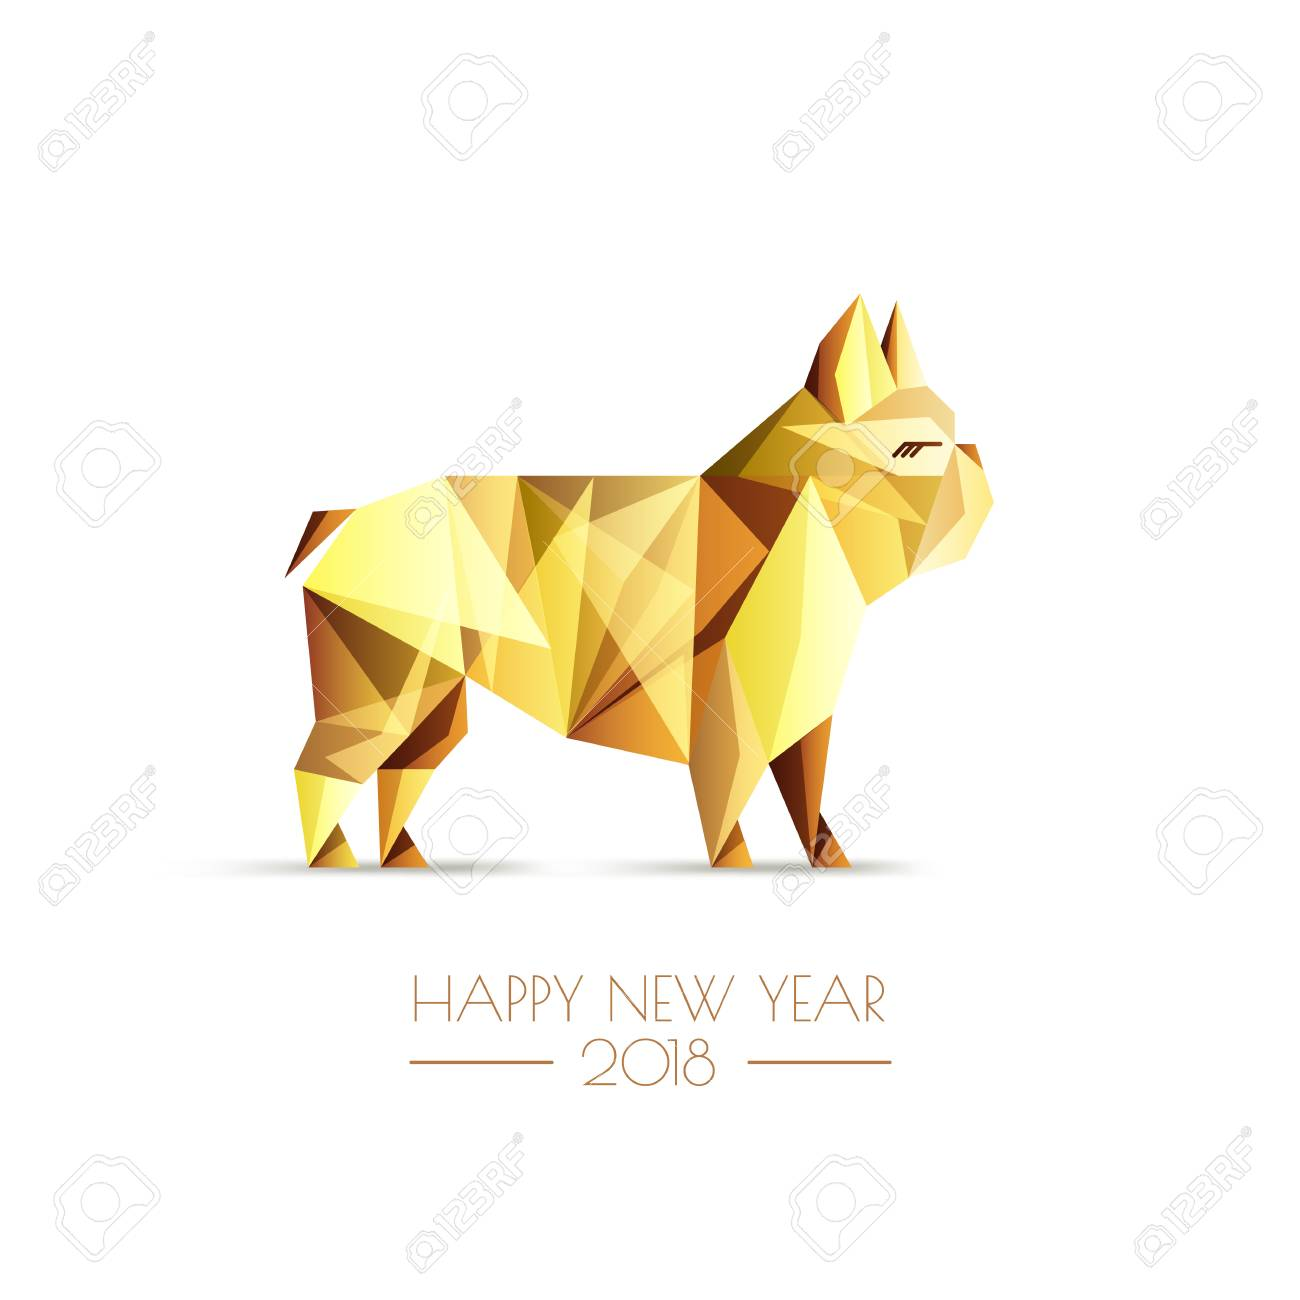 happy chinese new year 2018 vector greeting card poster banner with golden luxury